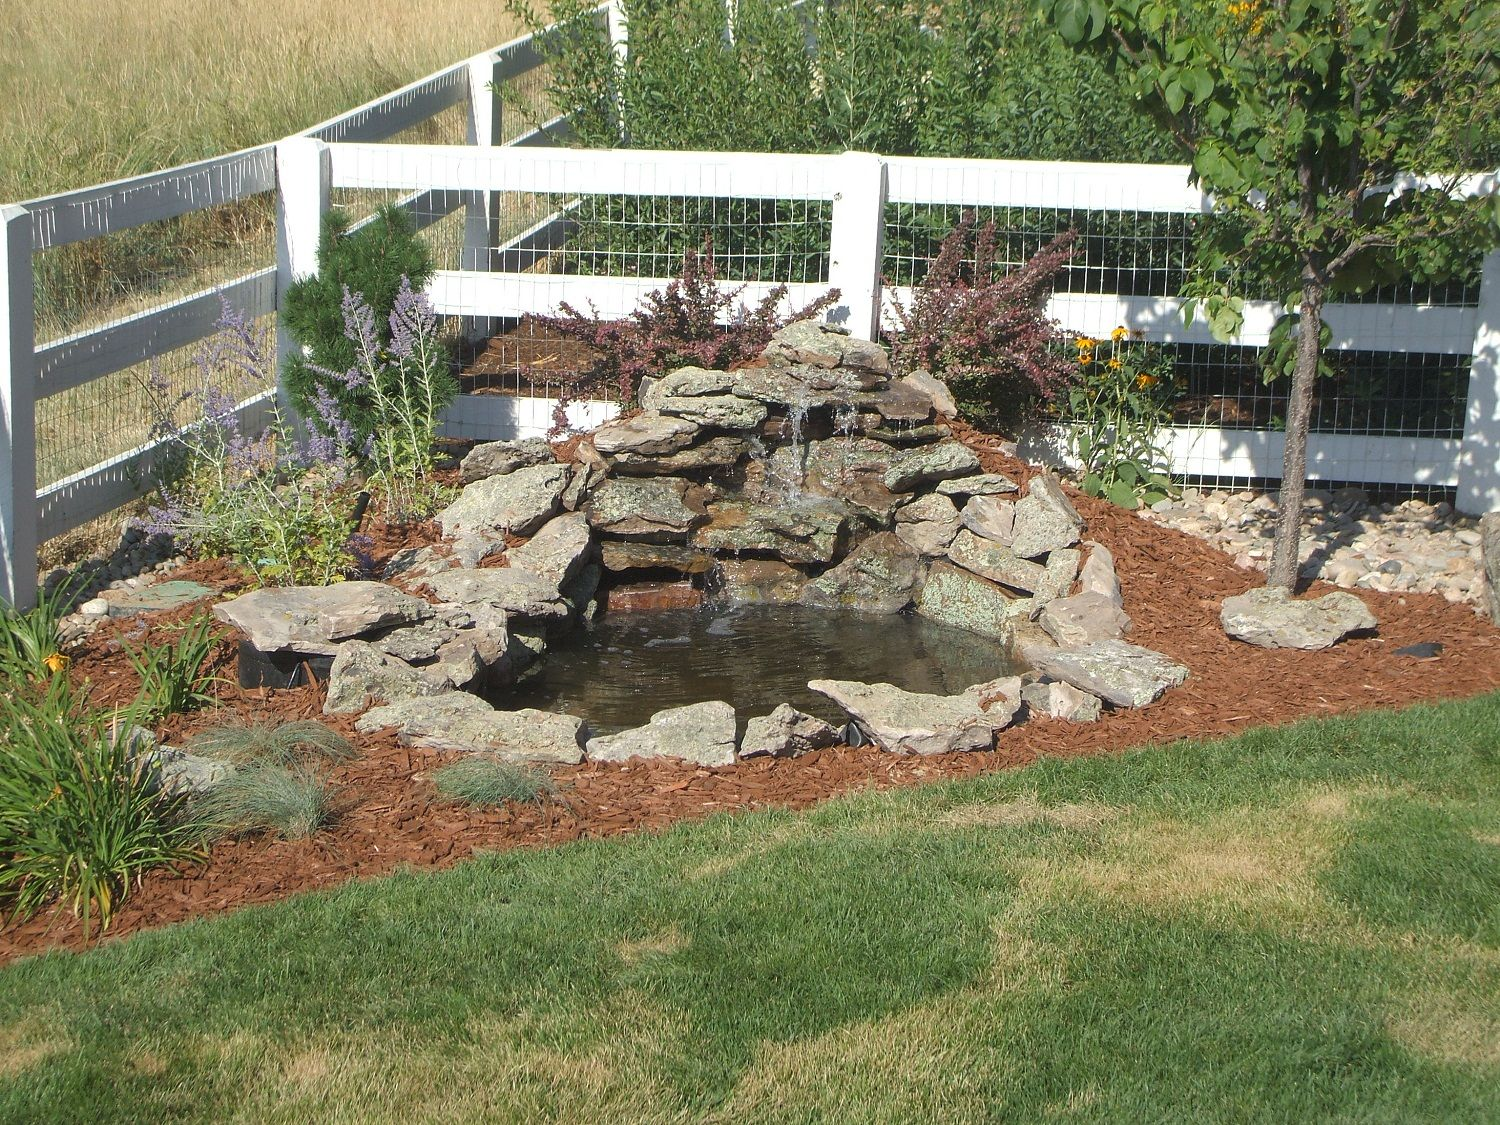 Garden and patio small diy ponds with waterfall and stone for Pond building ideas